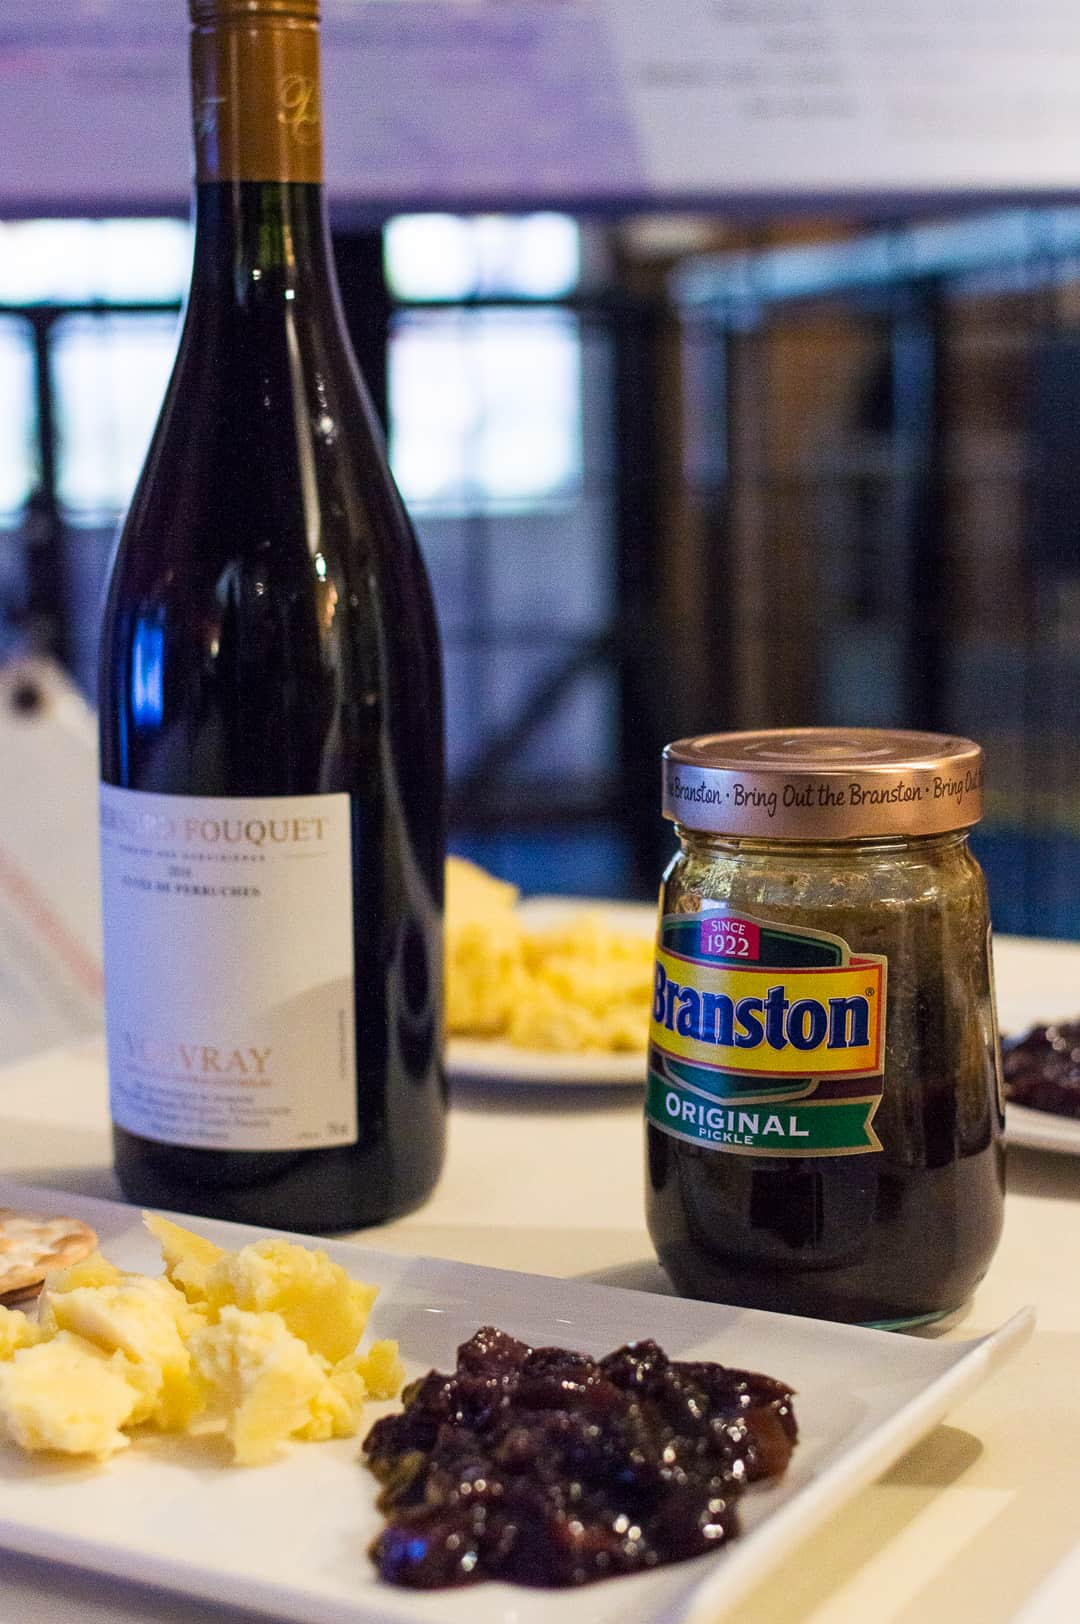 lancashire cheese, vouvray, Branston pickle original